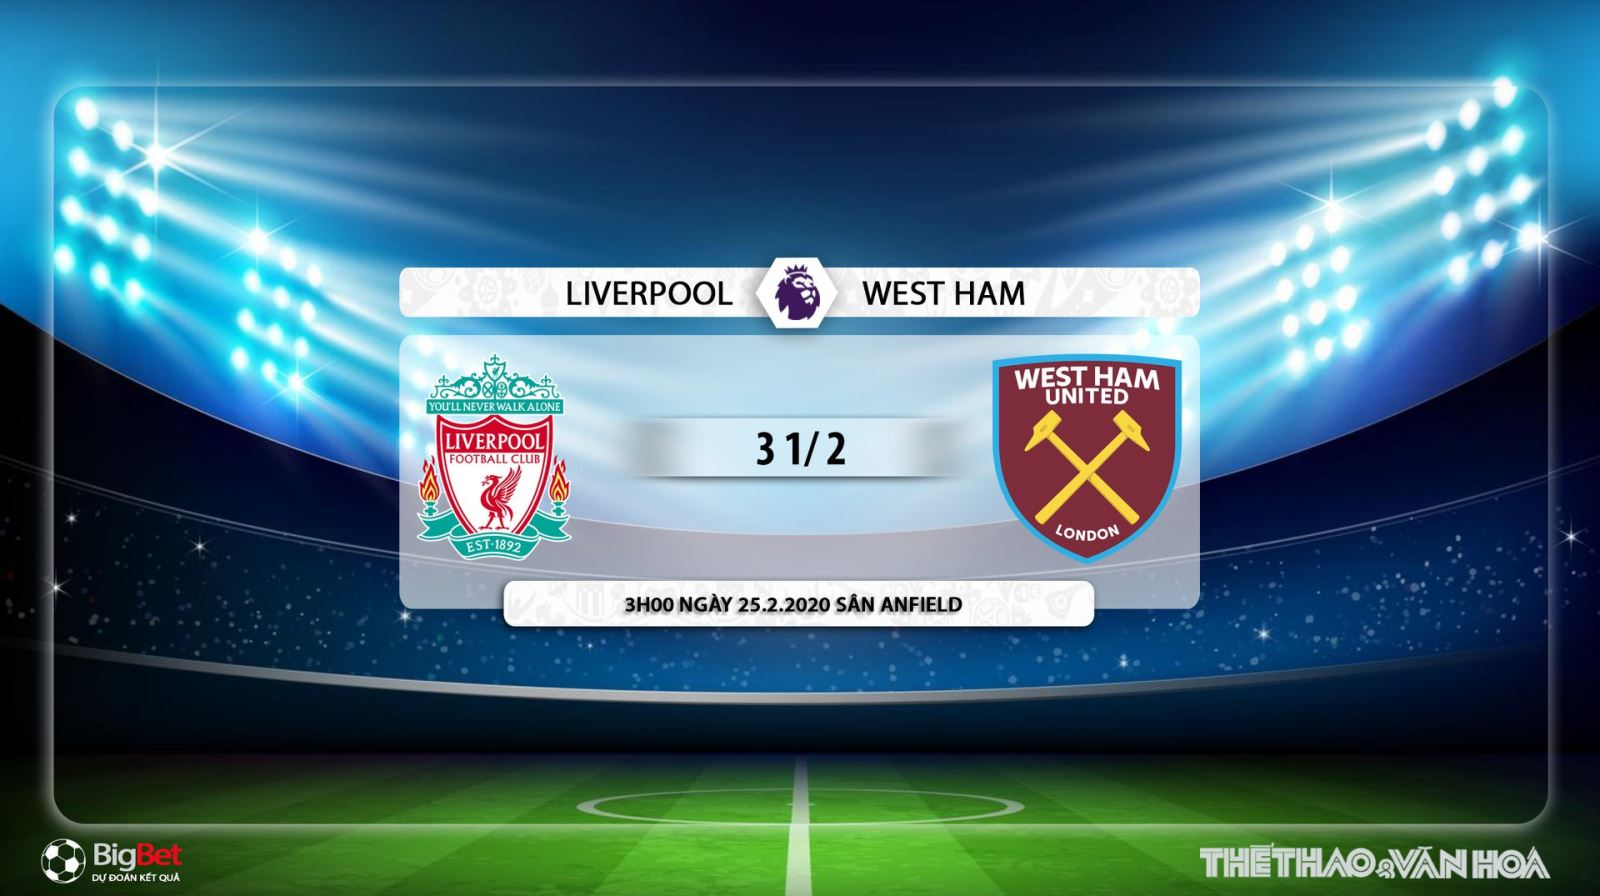 Liverpool vs West Ham, nhận định Liverpool vs West Ham, liverpool, west ham, trực tiếp Liverpool vs West Ham, soi kèo Liverpool vs West Ham, K+PC, K+PM, bóng đá